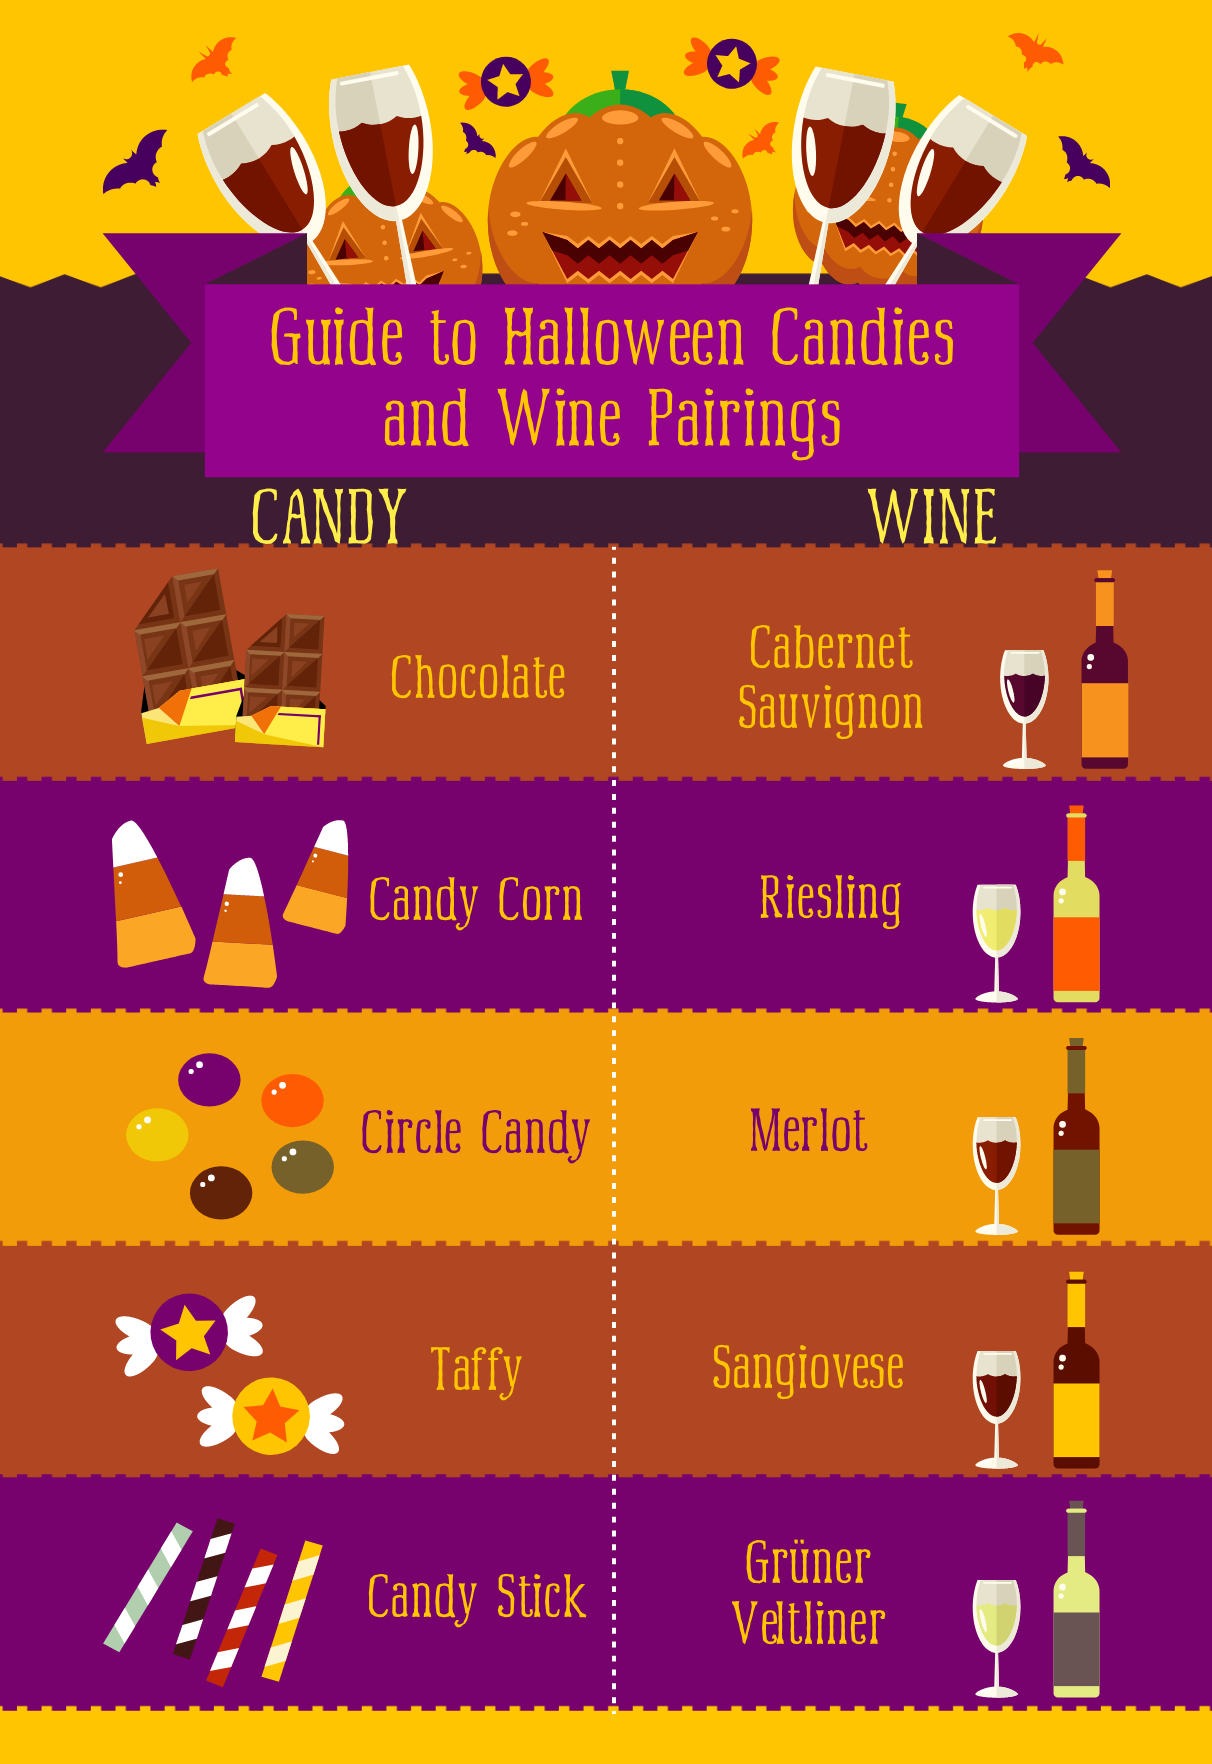 Halloween candy and wine pairings infographic